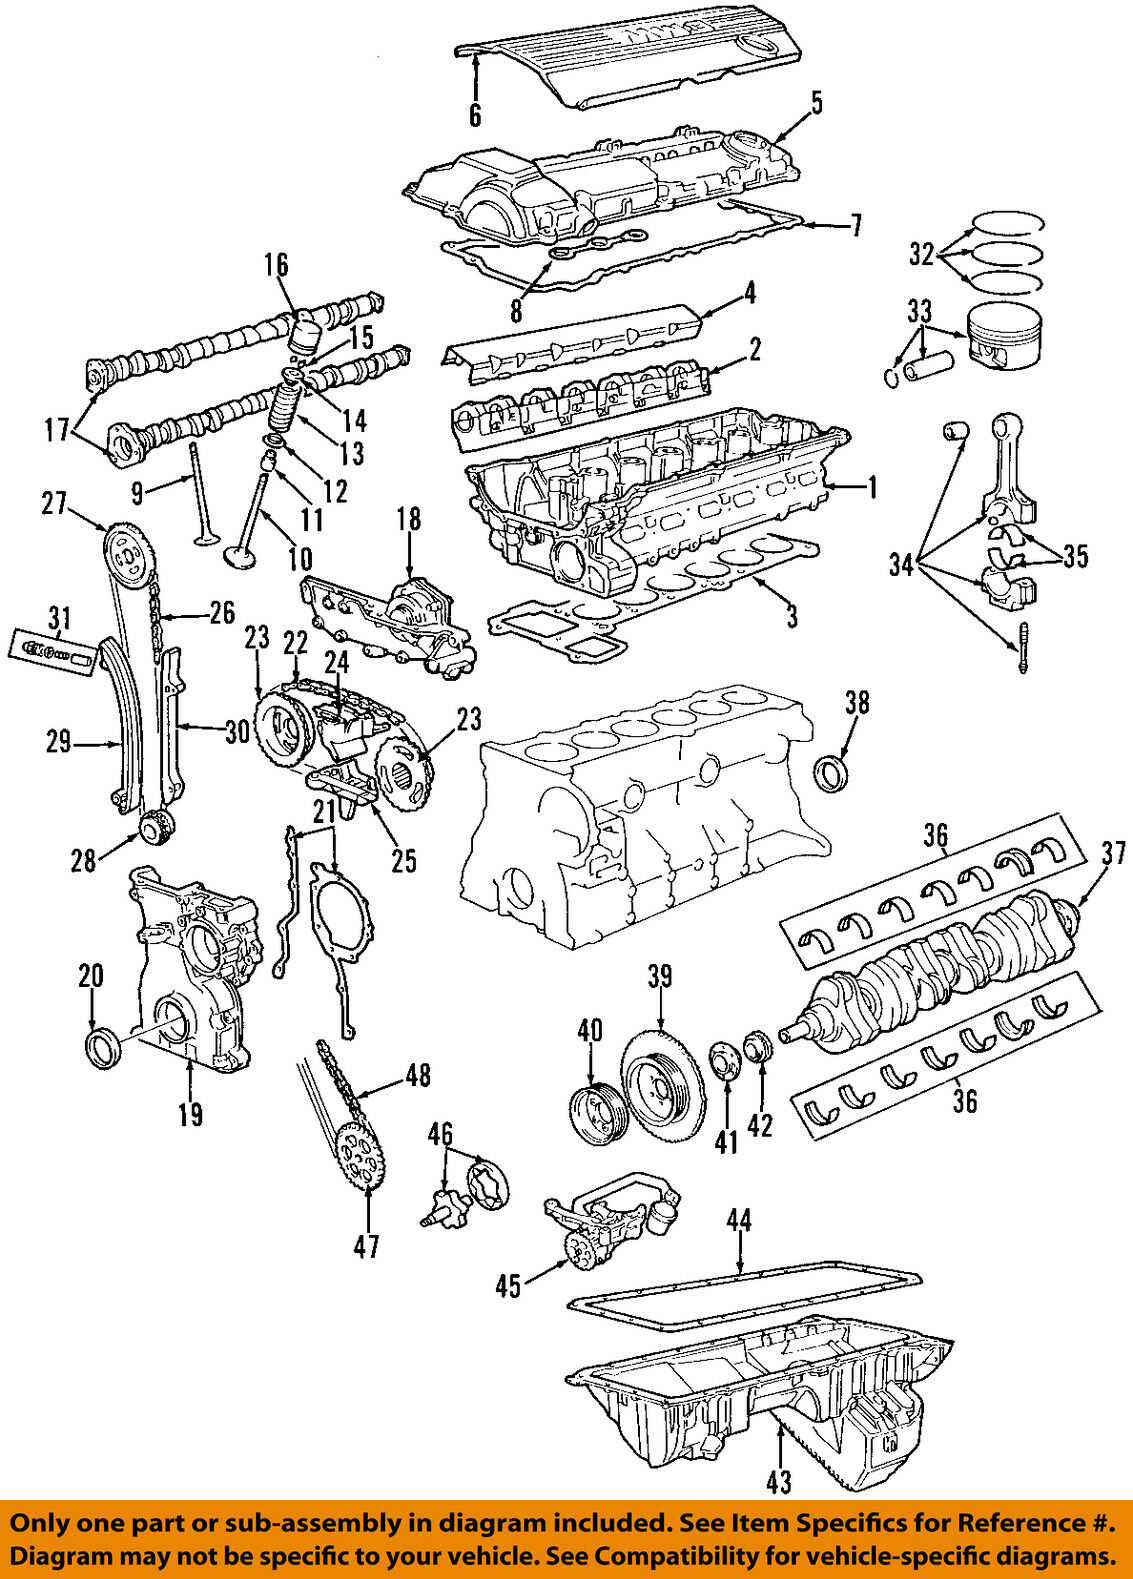 bmw n63 engine diagram, bmw m62 engine diagram, bmw n52 engine diagram, bmw m54 engine diagram, bmw 323i engine diagram, bmw m50 engine diagram, bmw m20 engine diagram, bmw m60 engine diagram, bmw n62 engine diagram, bmw m44 engine diagram, bmw e46 engine diagram, bmw m52 engine diagram, bmw n55 engine diagram, bmw m30 engine diagram, bmw s85 engine diagram, bmw n54 engine diagram, bmw m10 engine diagram, bmw m42 engine diagram, bmw s65 engine diagram, on 2000 bmw m52tu engine wiring diagram